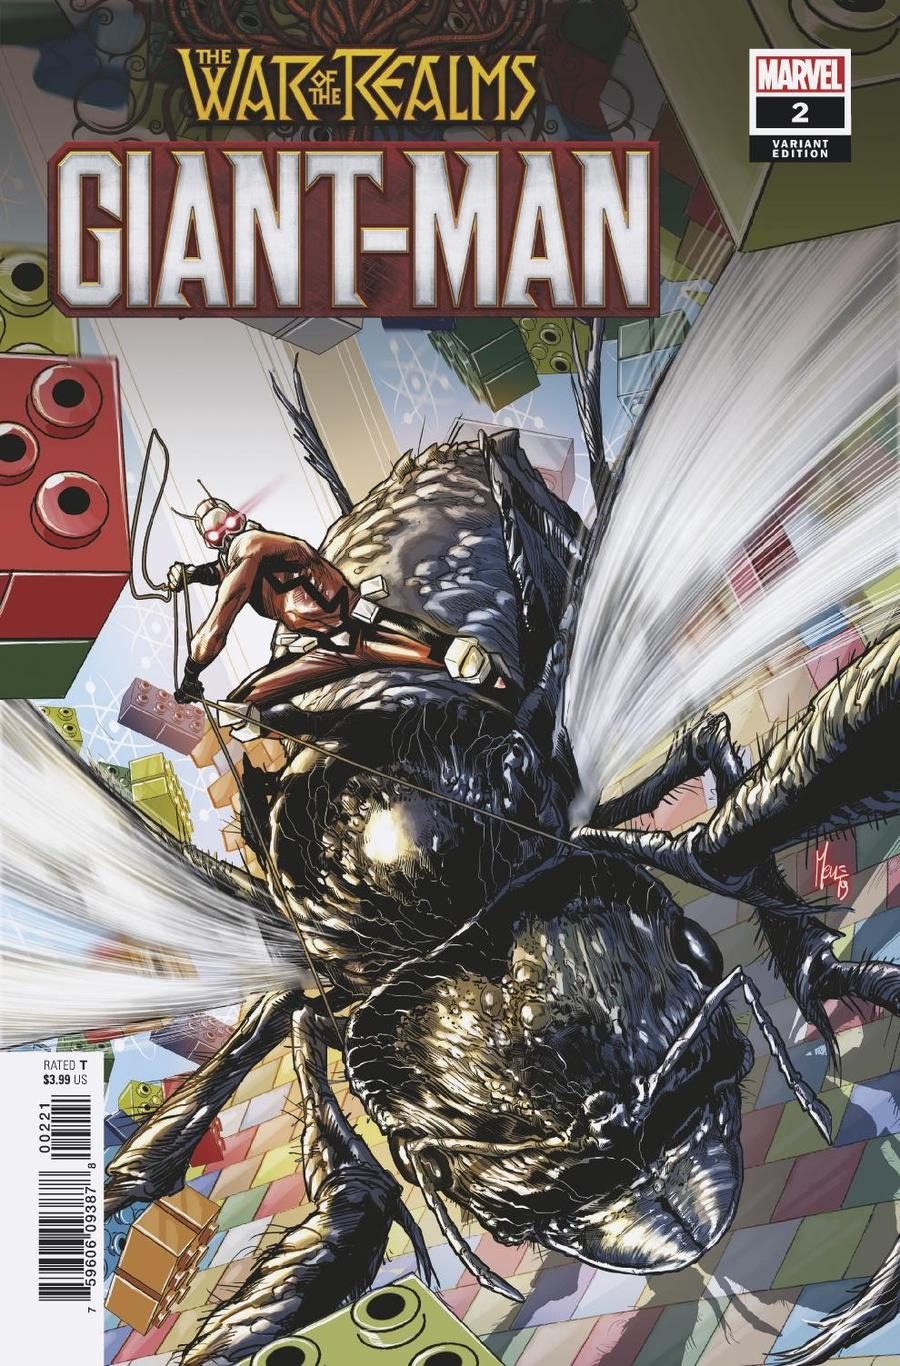 Giant-Man #2 Cover B Variant Marco Checchetto Cover (War Of The Realms Tie-In)